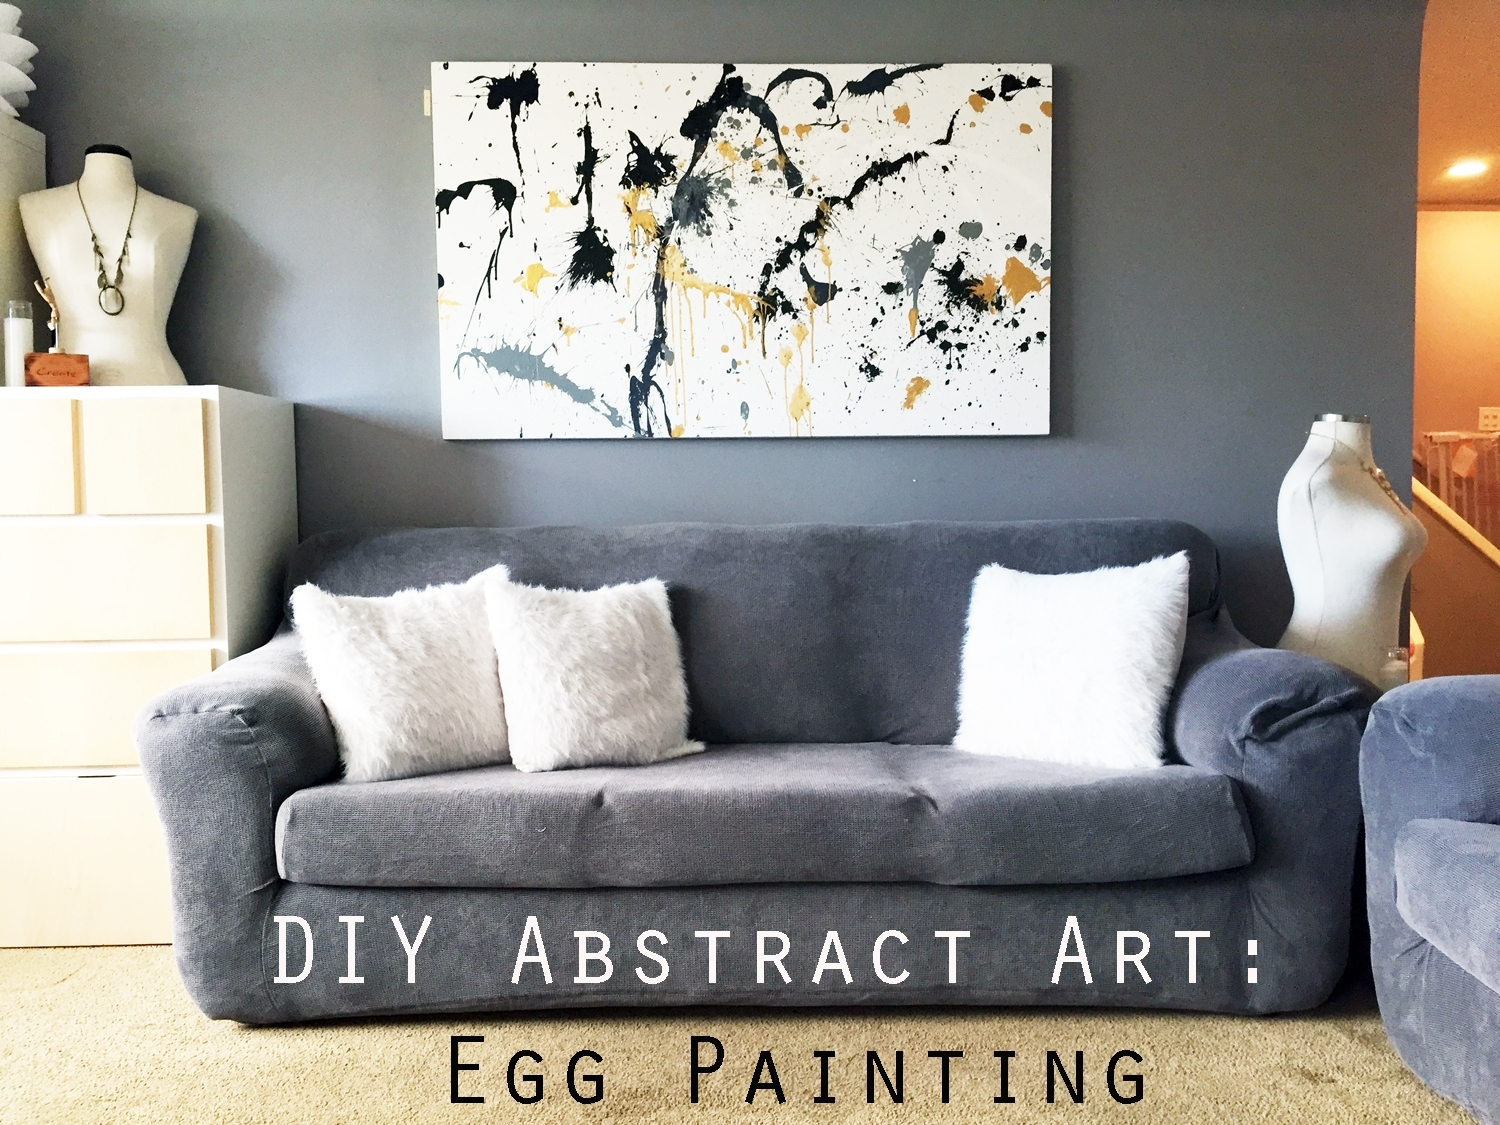 Diy Canvas Painting: Egg Splatter Gold Abstract Art – Creative Pertaining To Most Current Diy Abstract Wall Art (View 14 of 20)